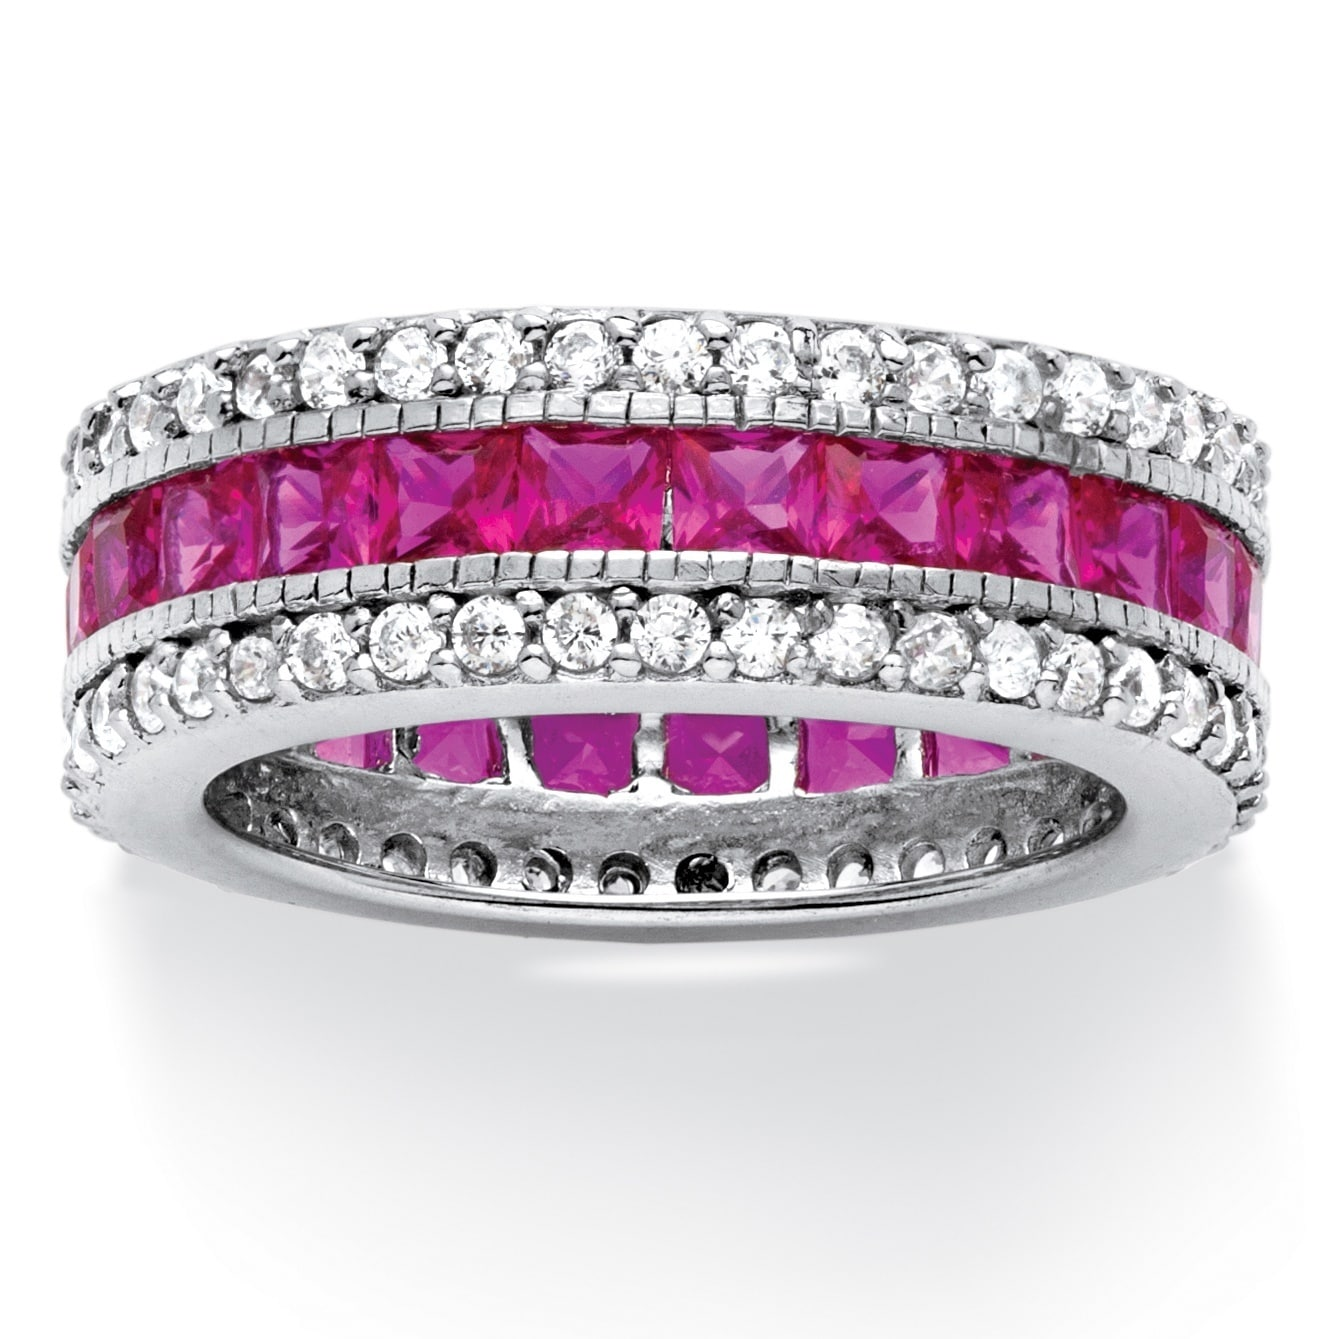 Palm Beach 10.83 TCW Princess-Cut Lab Created Ruby Eterni...